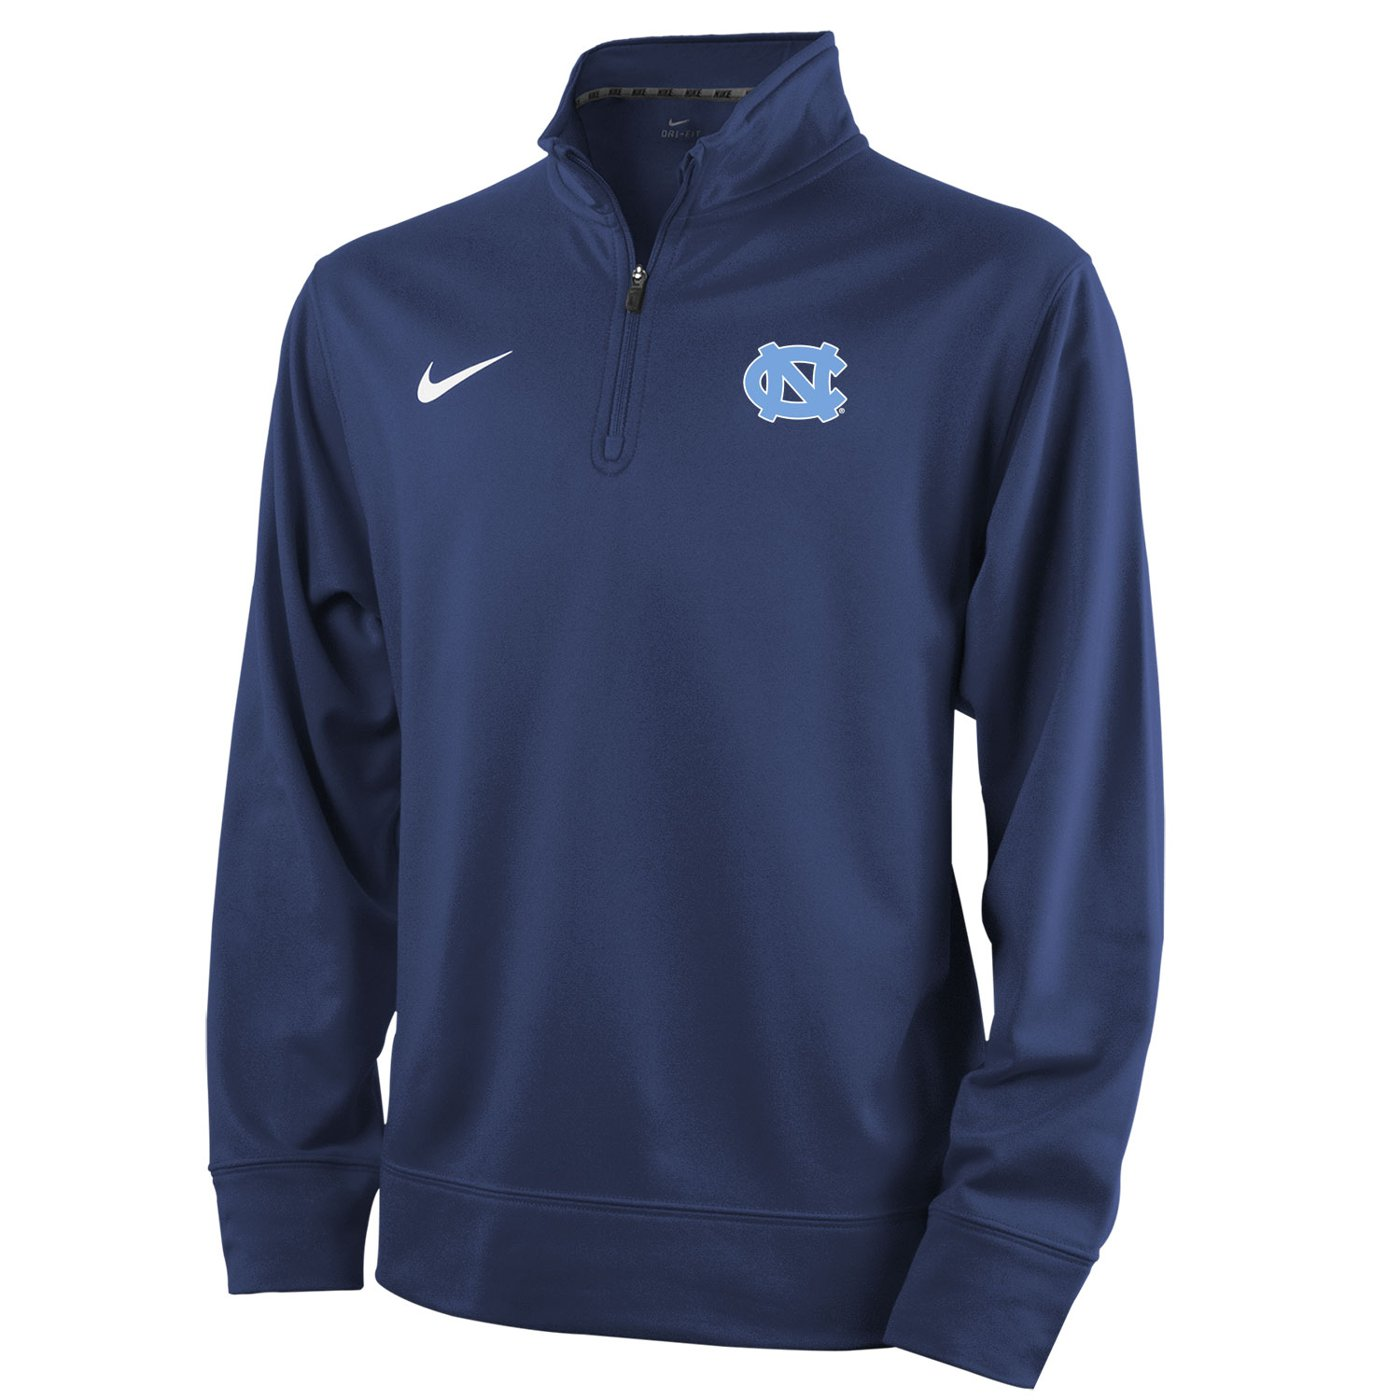 nike 1 4 zip pullover. johnny t-shirt - north carolina tar heels youth dri-fit 1/4-zip pullover (navy) by nike 1 4 zip